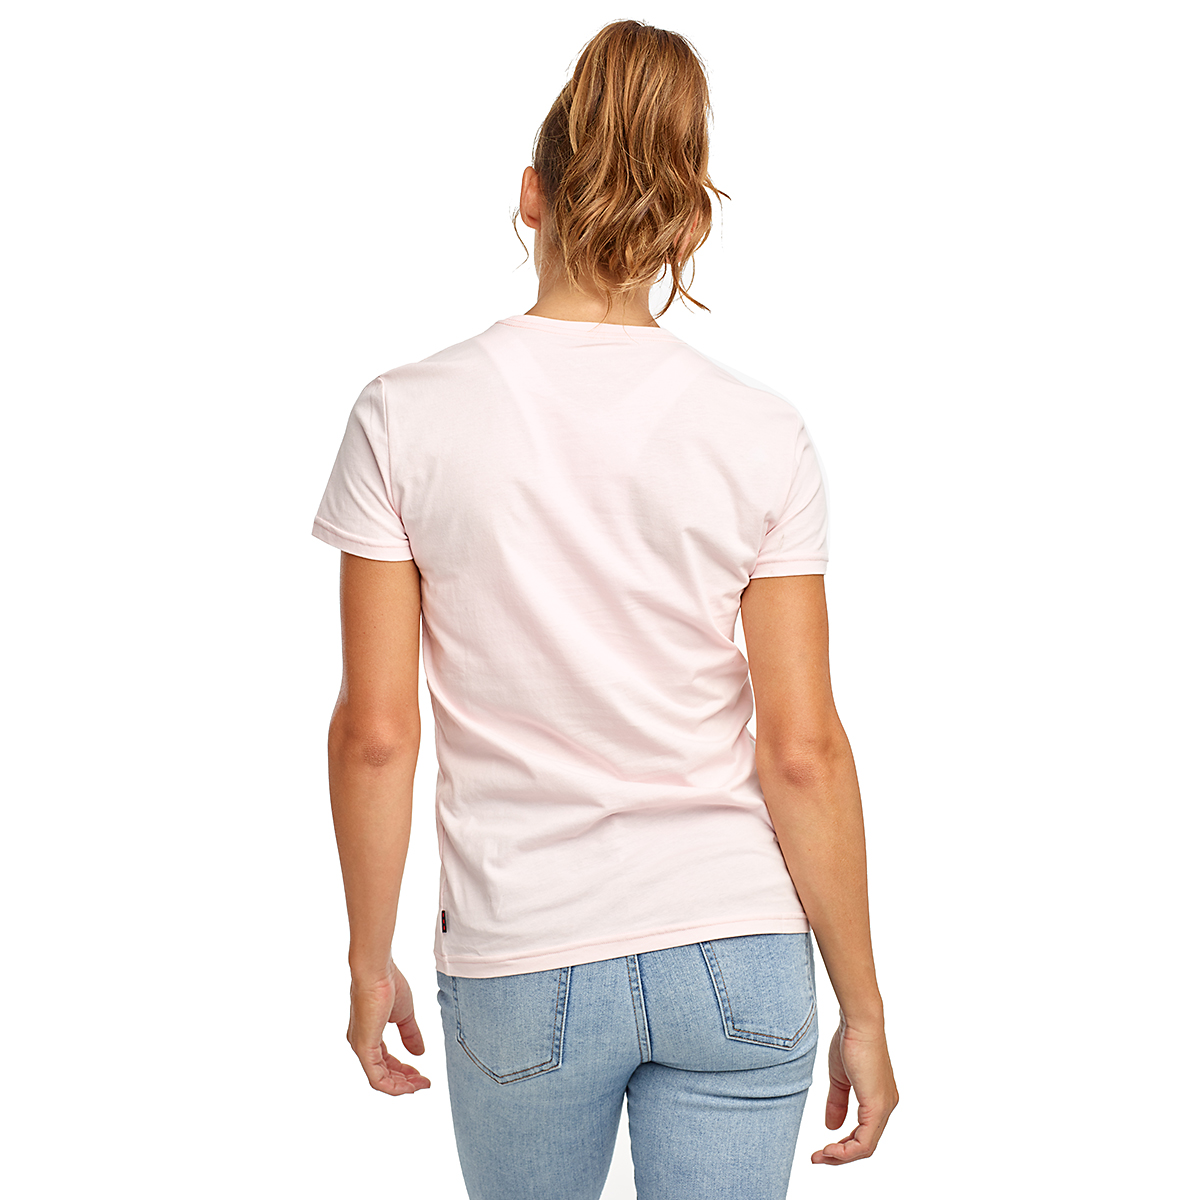 Women's Saucony Rested Short Sleeve - Color: Barely Pink - Size: XXS, Barely Pink, large, image 2